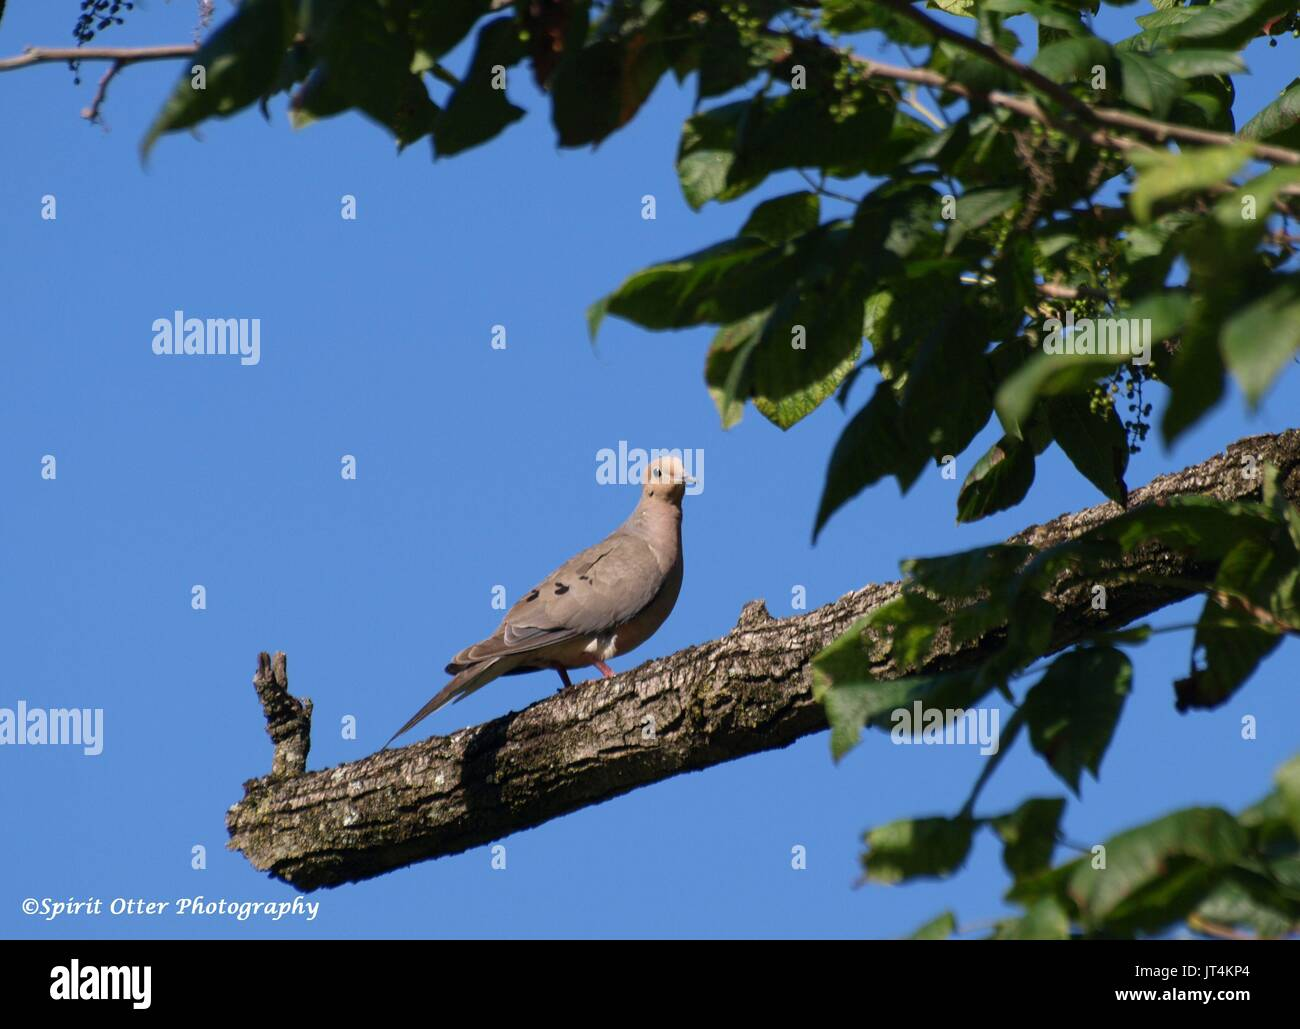 Mourning dove on dead branch - Stock Image